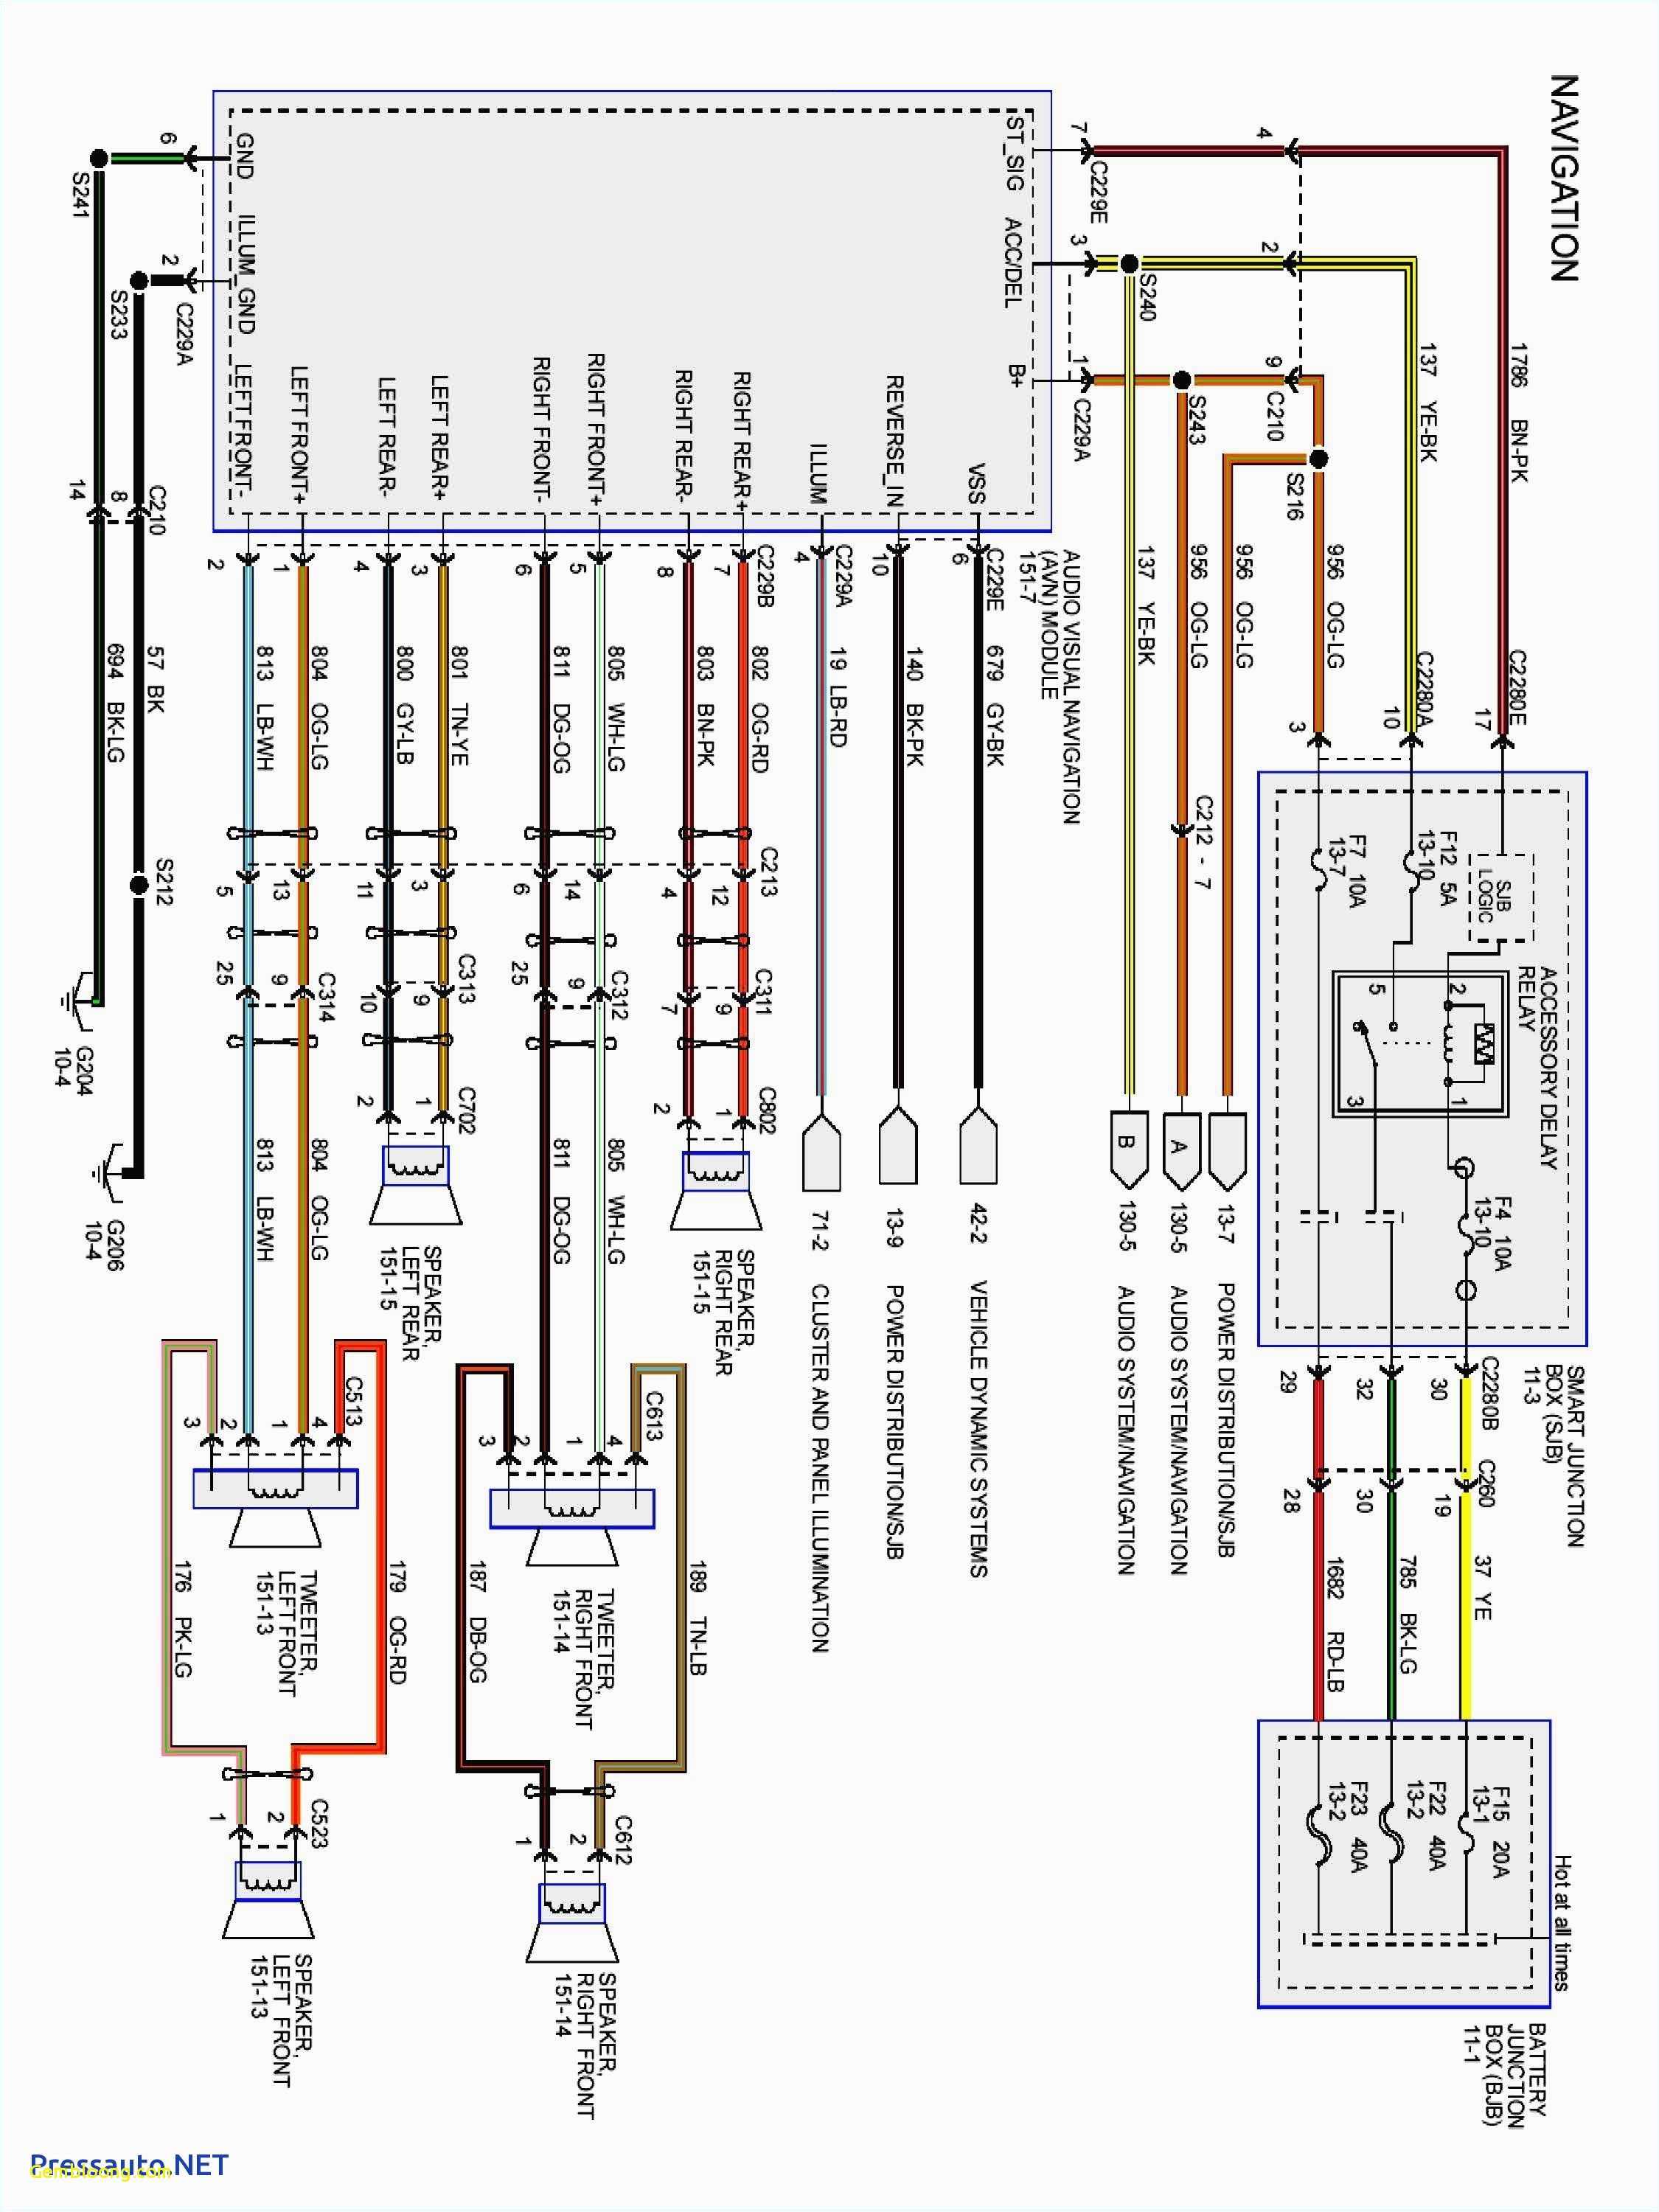 abs wiring diagram 2008 ford fusion premium wiring diagram blog abs wiring diagram 2008 ford fusion